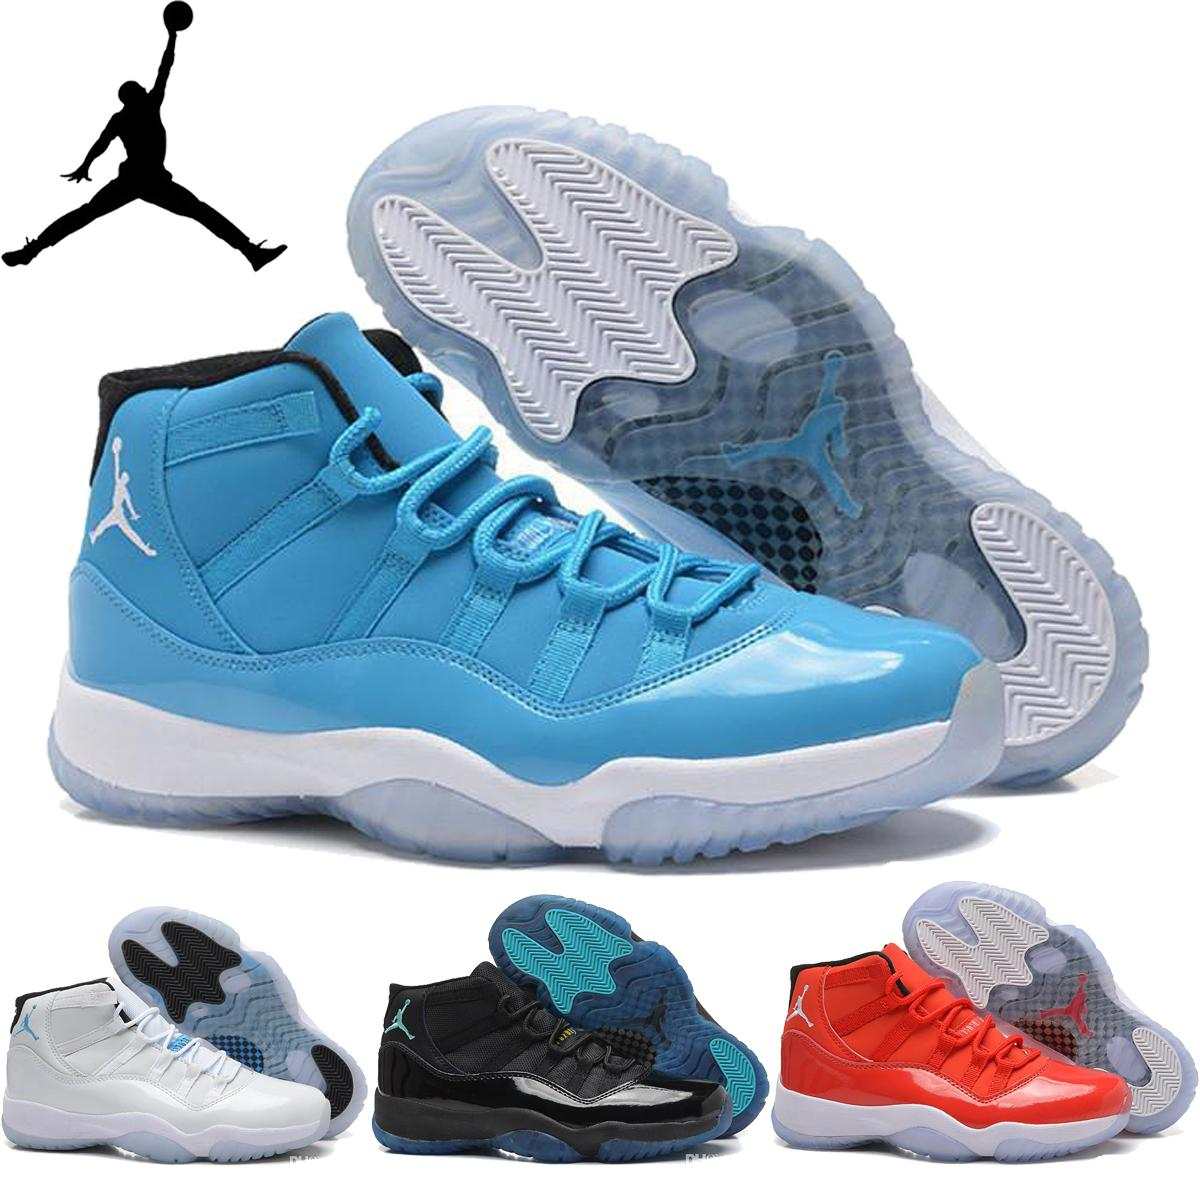 e106c2c040d706 ... gamma blue women air jordans women cheap jordan 21116 f667c  new zealand  nike air jordan 11 retro xi men women basketball shoes bred concord 72 10